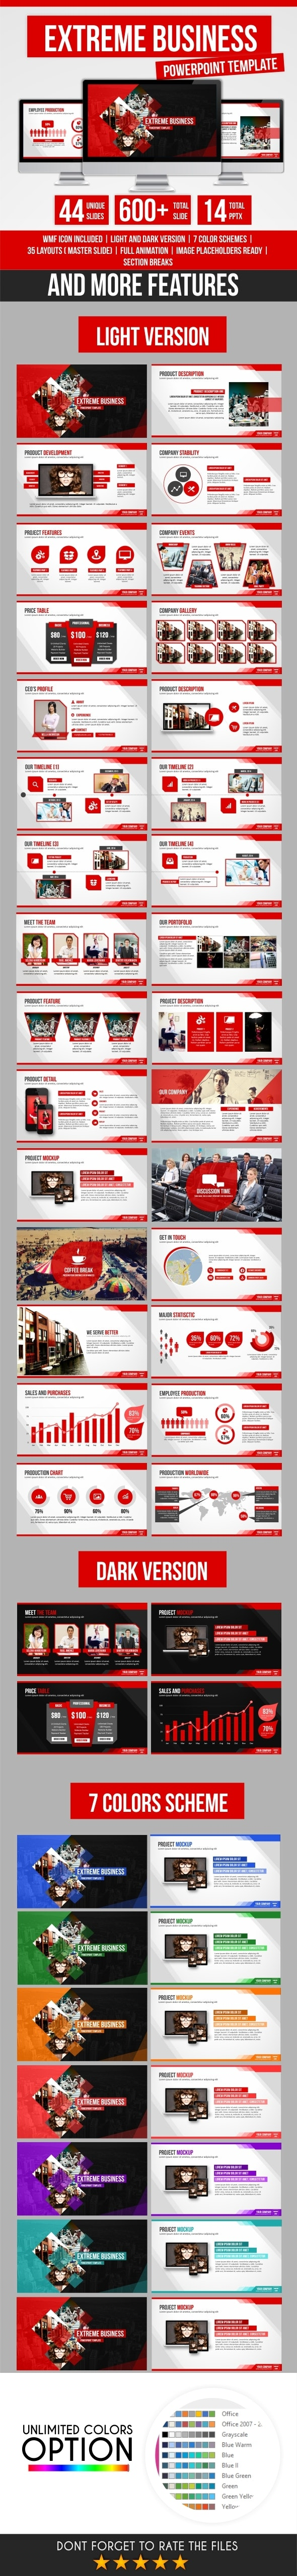 Extreme Bussiness PowerPoint Template - Business PowerPoint Templates